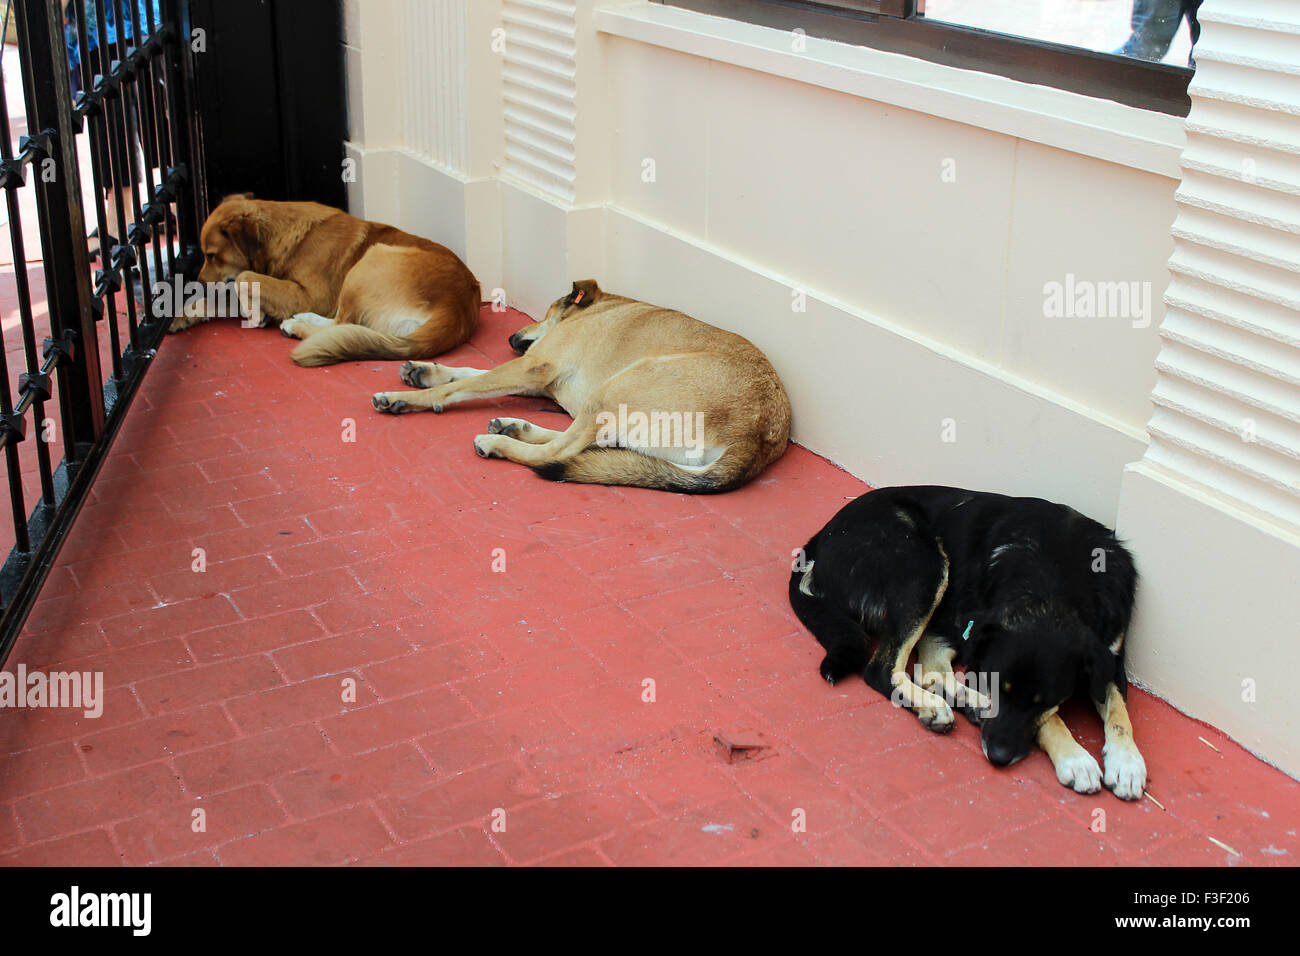 Sleeping Stray Dogs outside in Istanbul - Stock Image